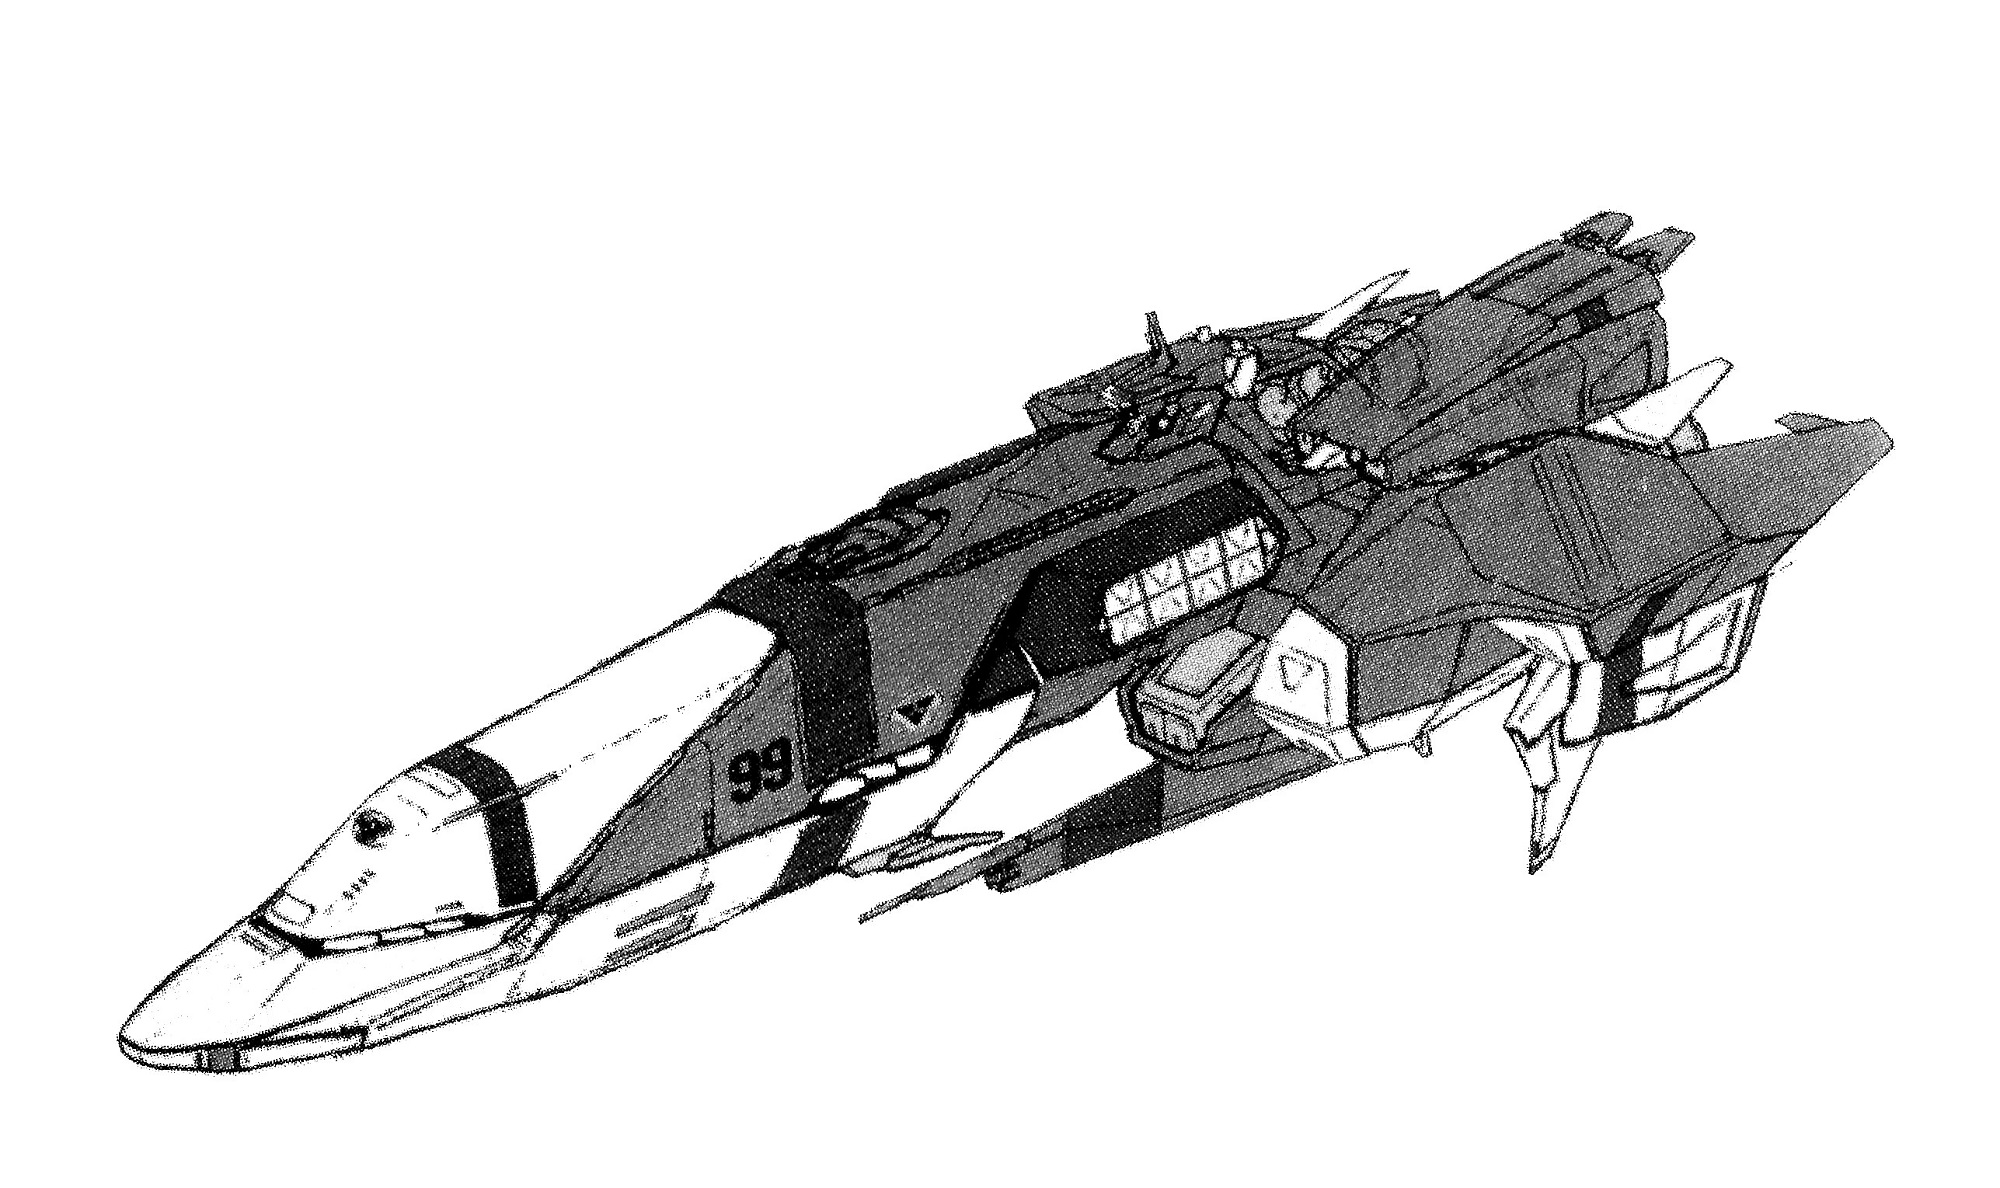 Shimakaze-class Super Dimensional Battlecruiser, guided missile 1